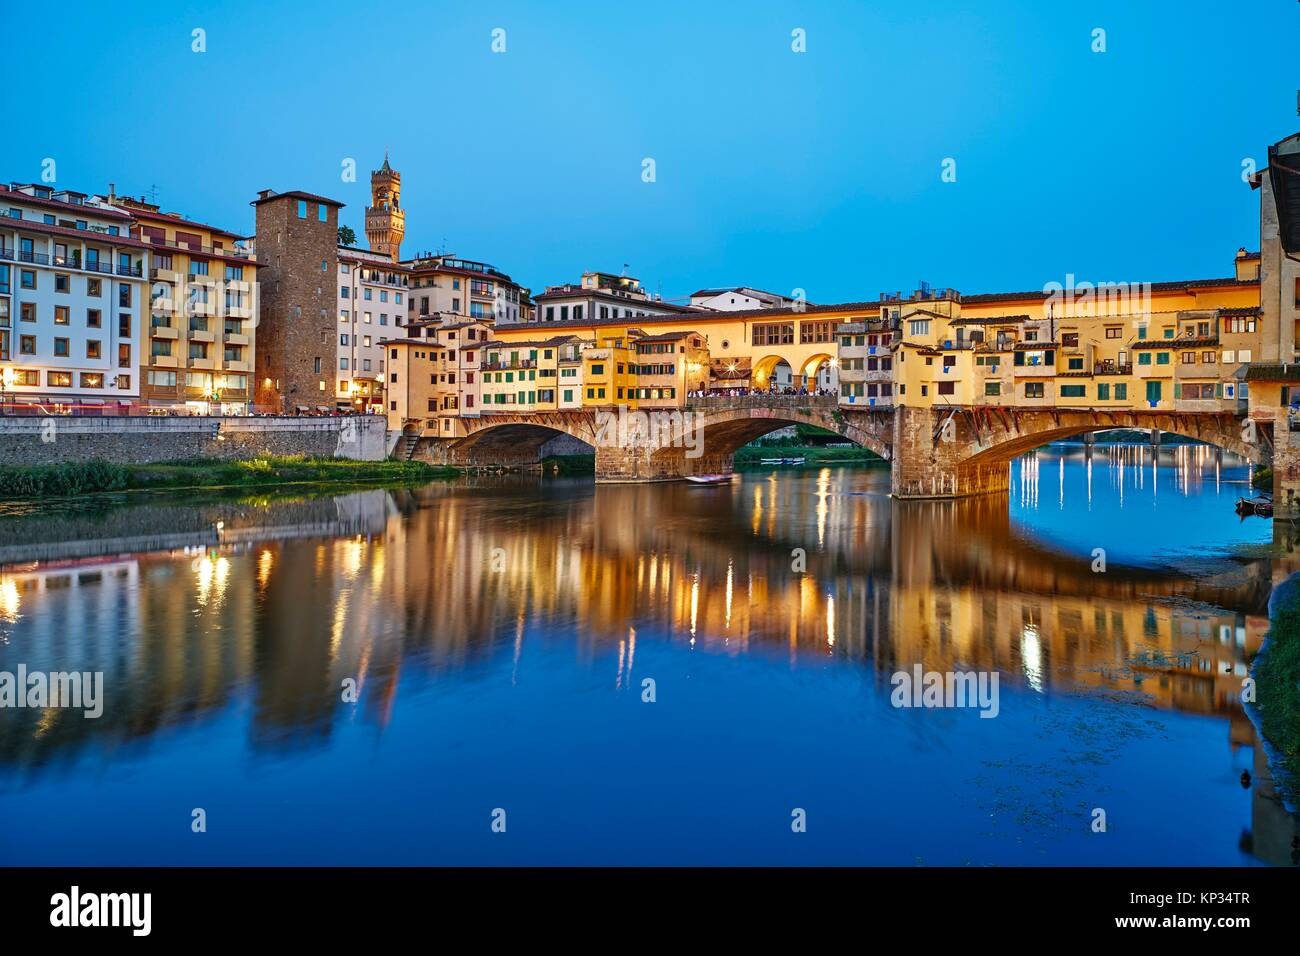 The Ponte Vecchio (´Old Bridge´) is a medieval stone closed-spandrel segmental arch bridge over the Arno - Stock Image